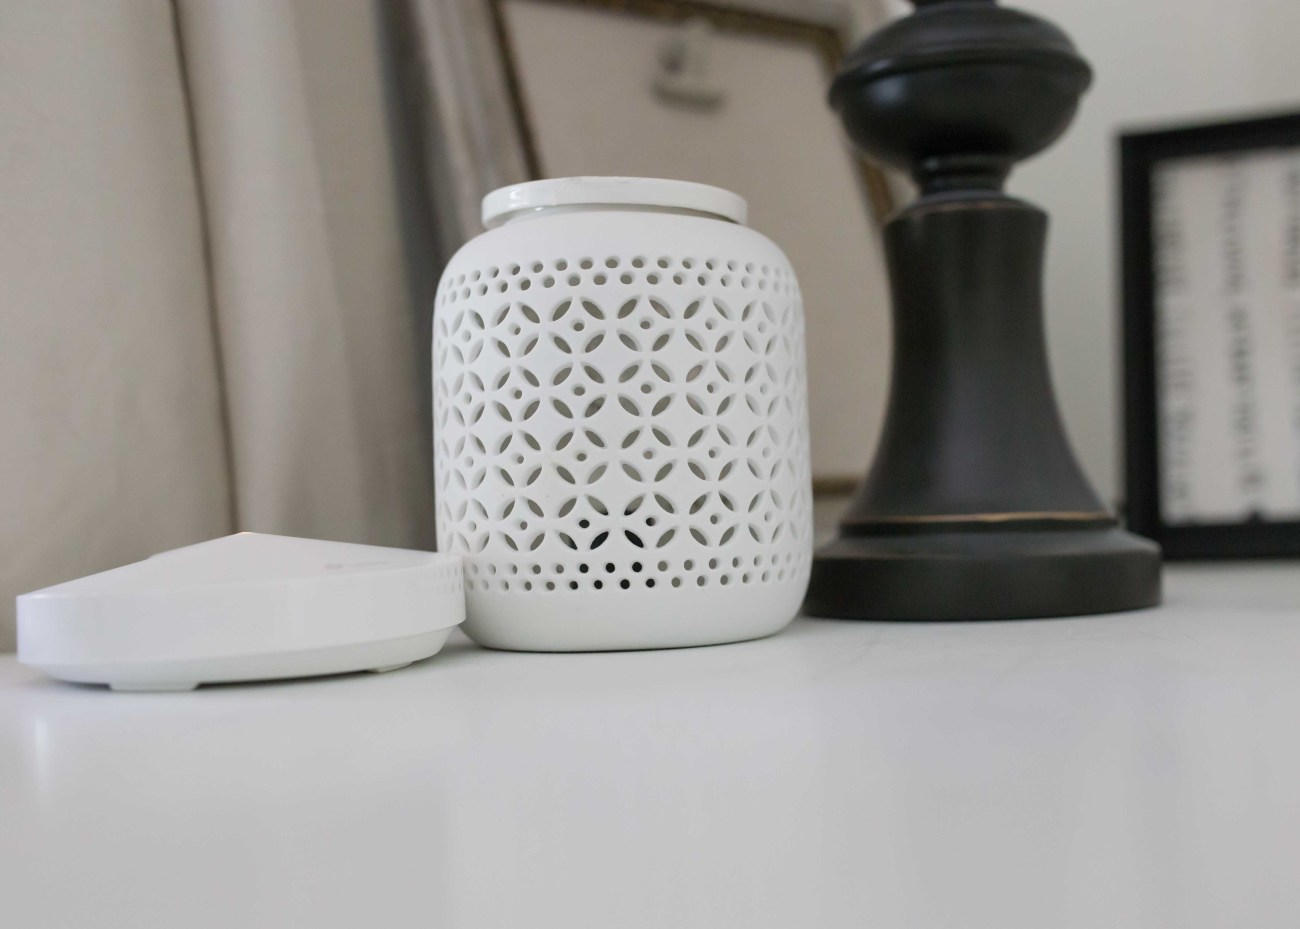 better wi-fi coverage for your home